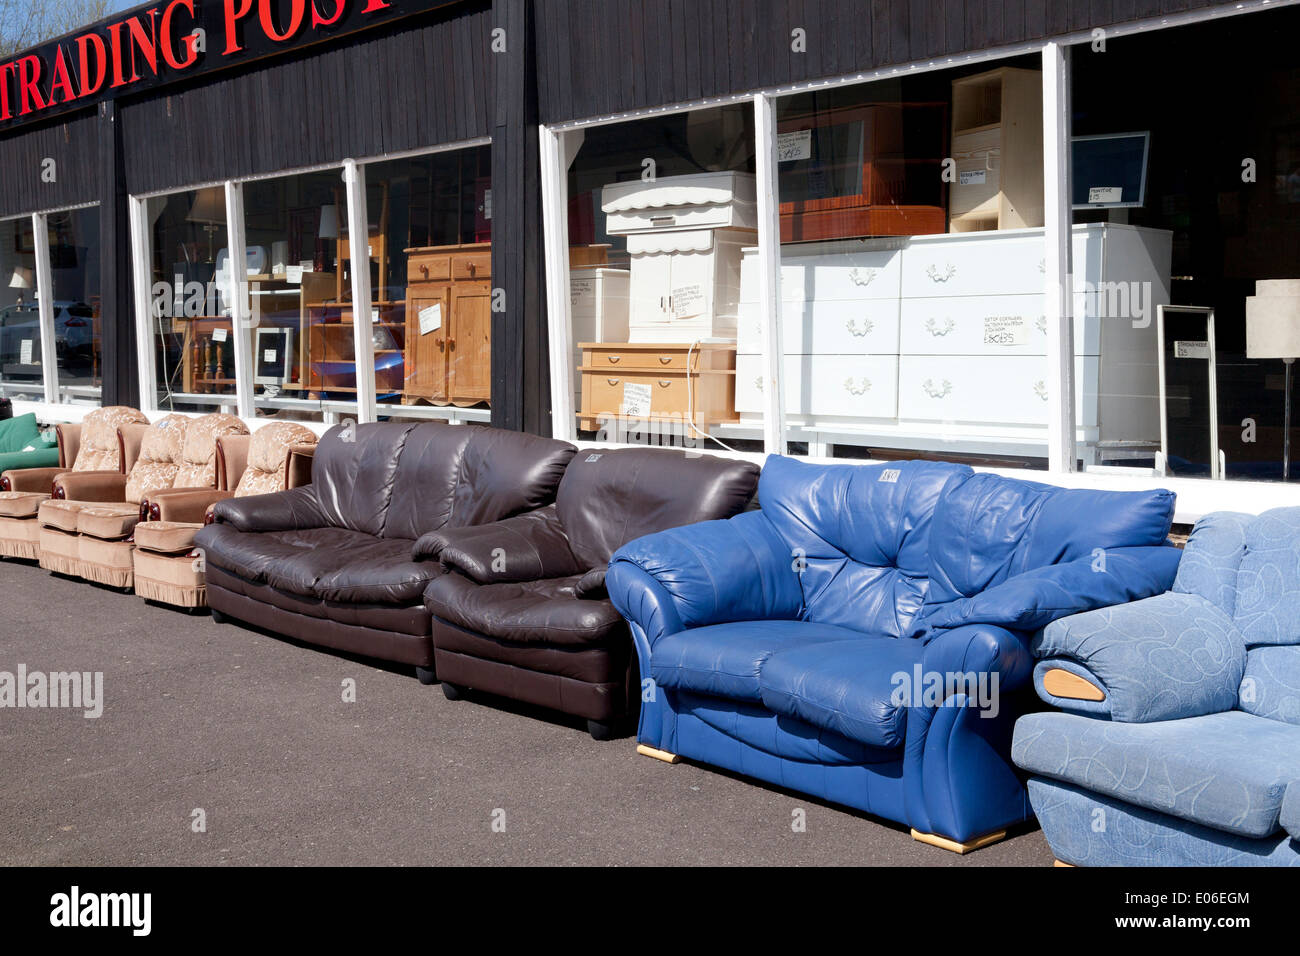 Secondhand Sofas For Sale Outside The Trading Post, Sowerby Bridge, West  Yorkshire